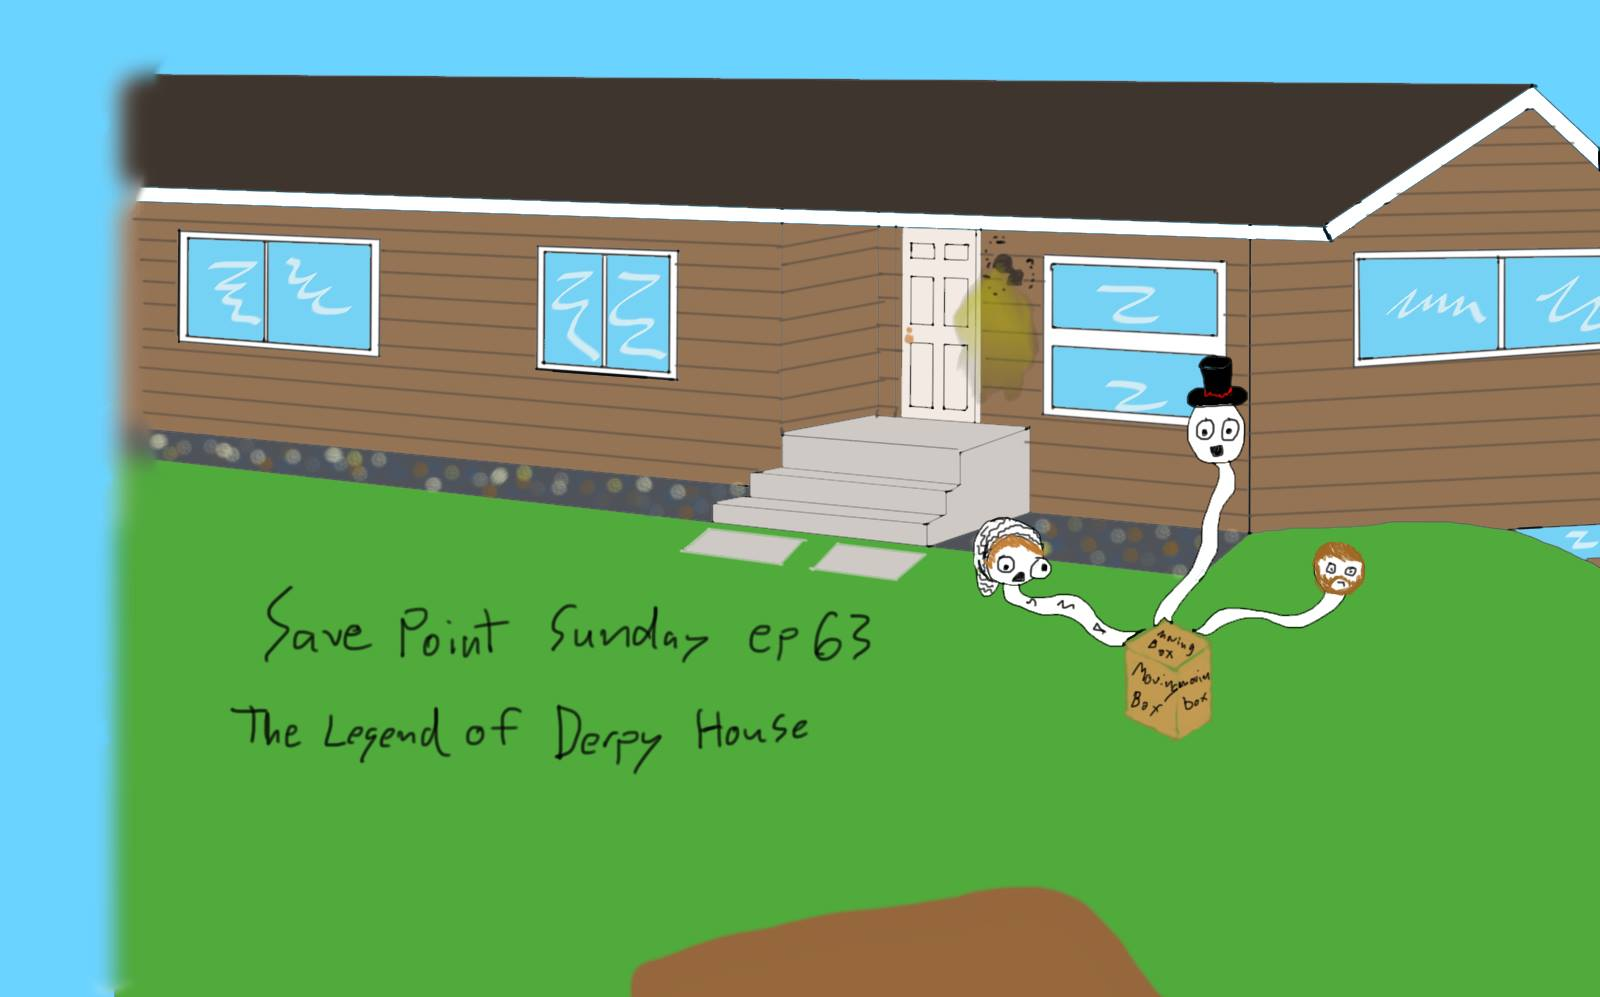 Episode 63: The Legend Of Derpy House